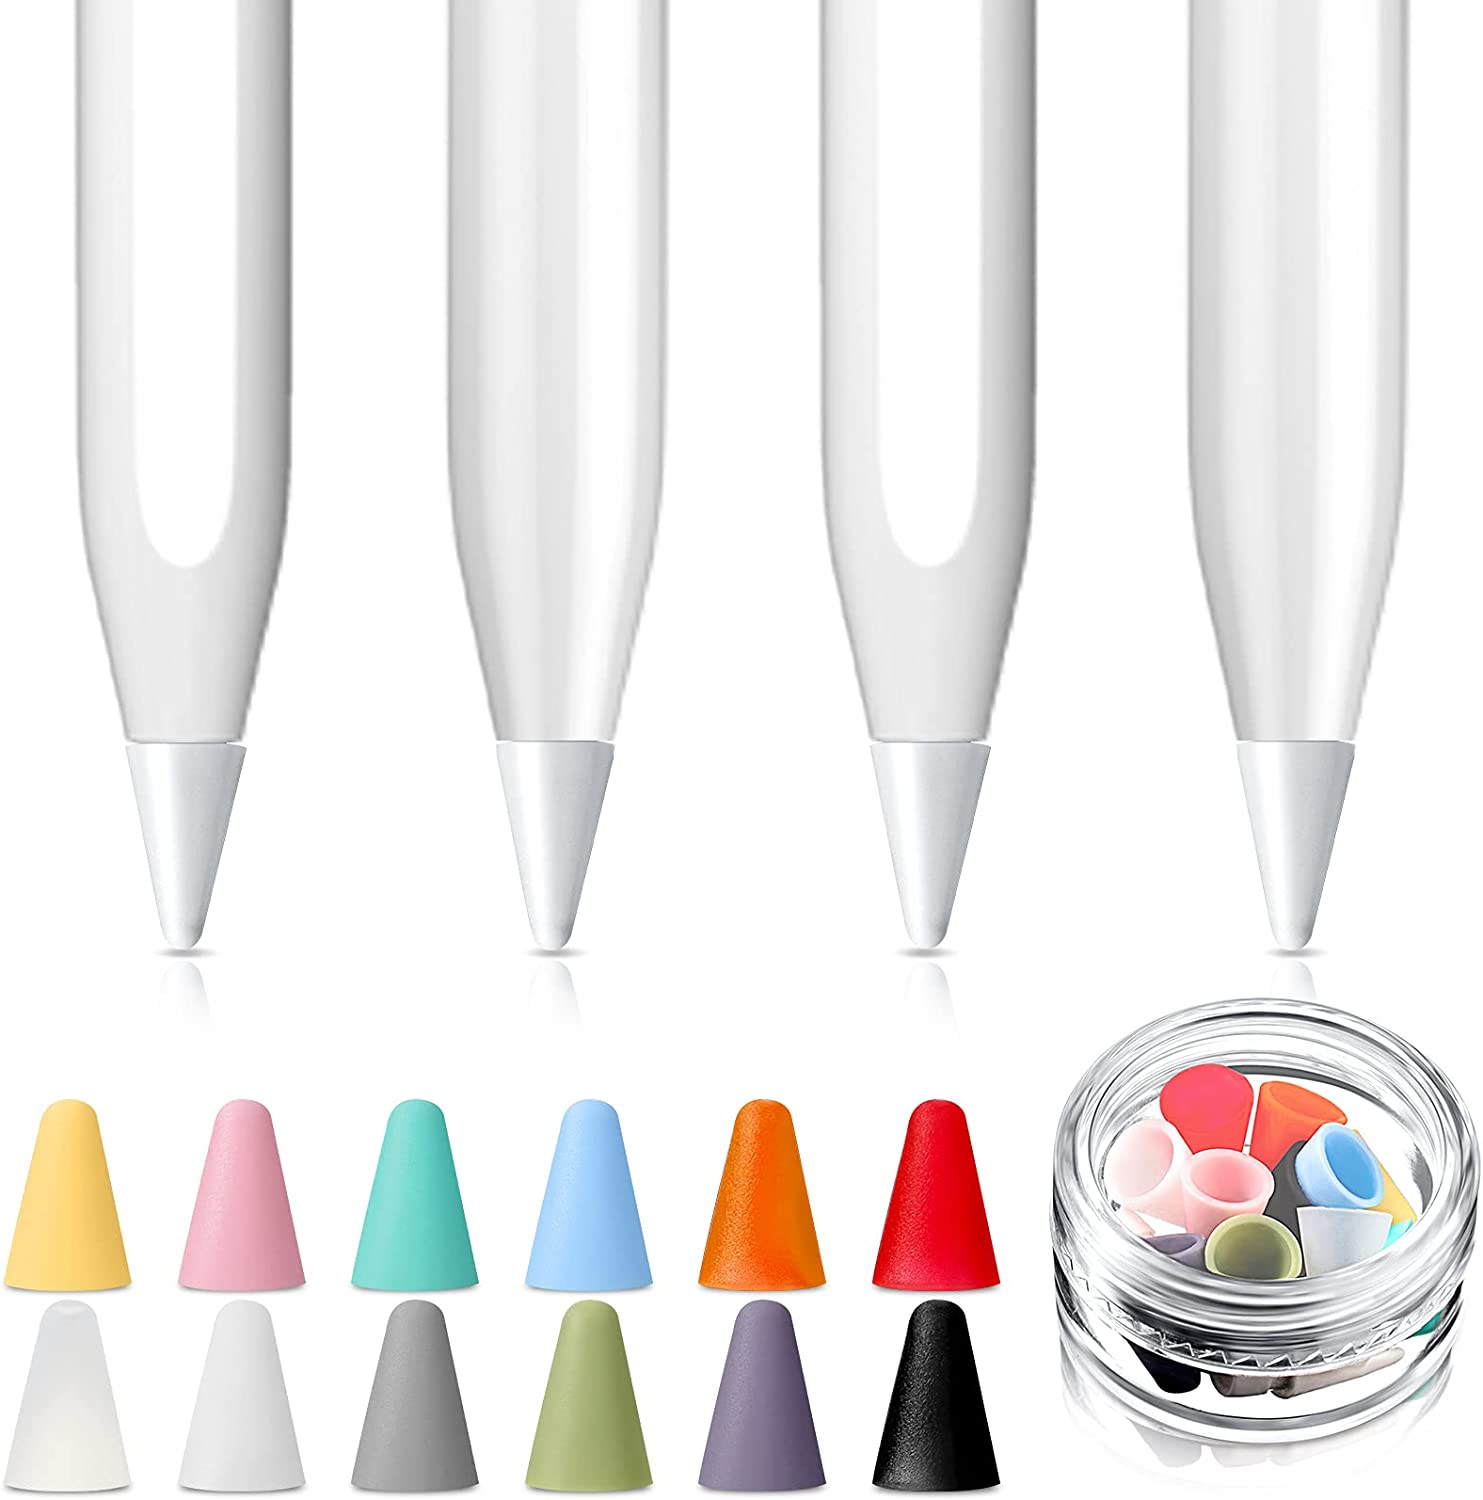 4 Pieces White Replacement Tips Pen Nibs Compatible with Apple Pencil 1st and 2nd Gen and iPad Pro with 12 Pieces Silicone Nibs Caps, 12 Colors